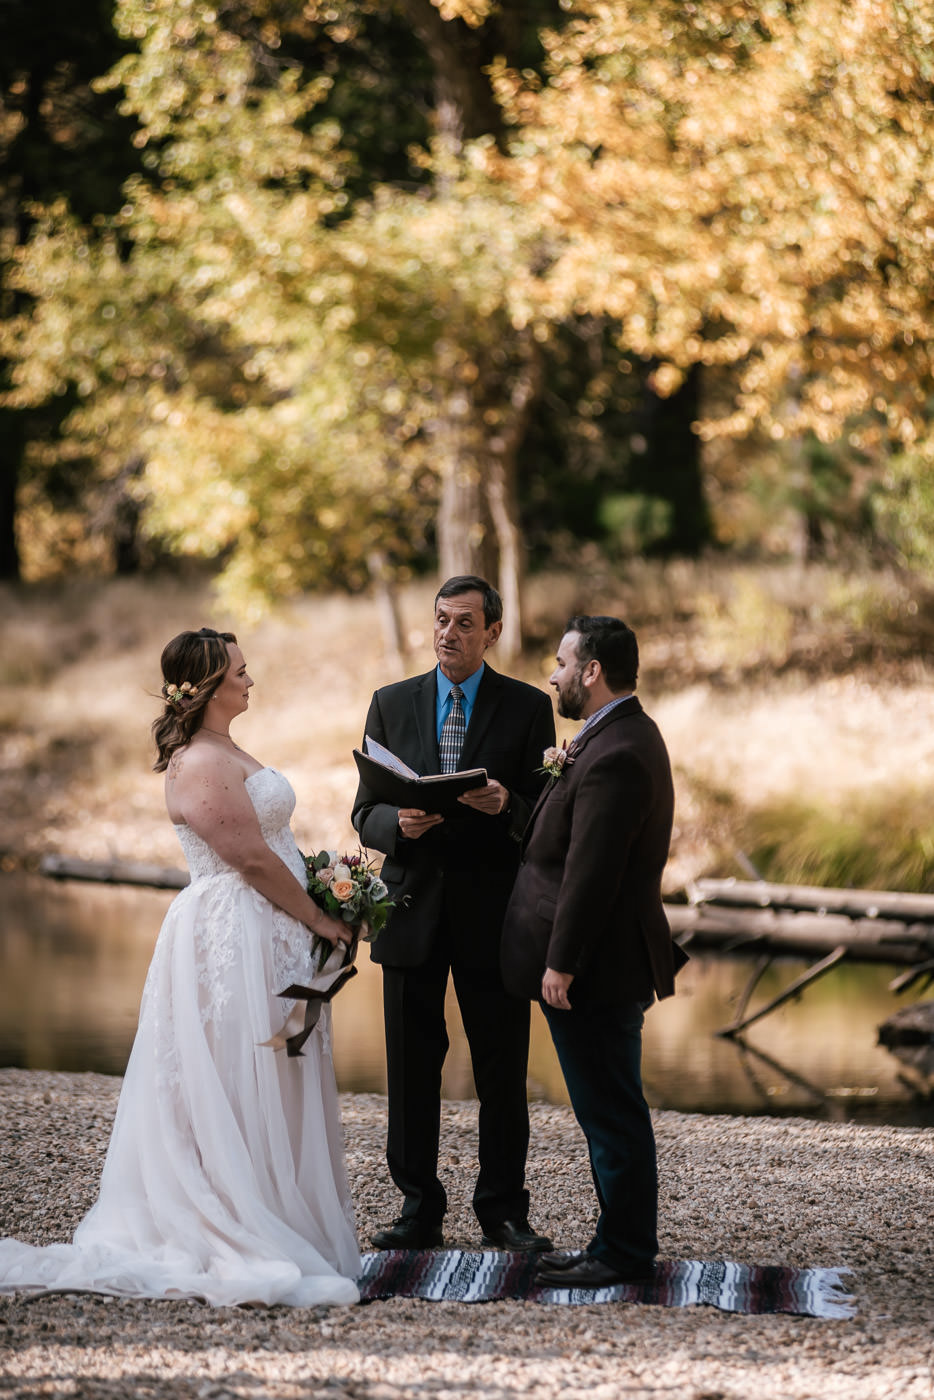 cathedral-beach-elopement-ceremony-yosemite-6.jpg